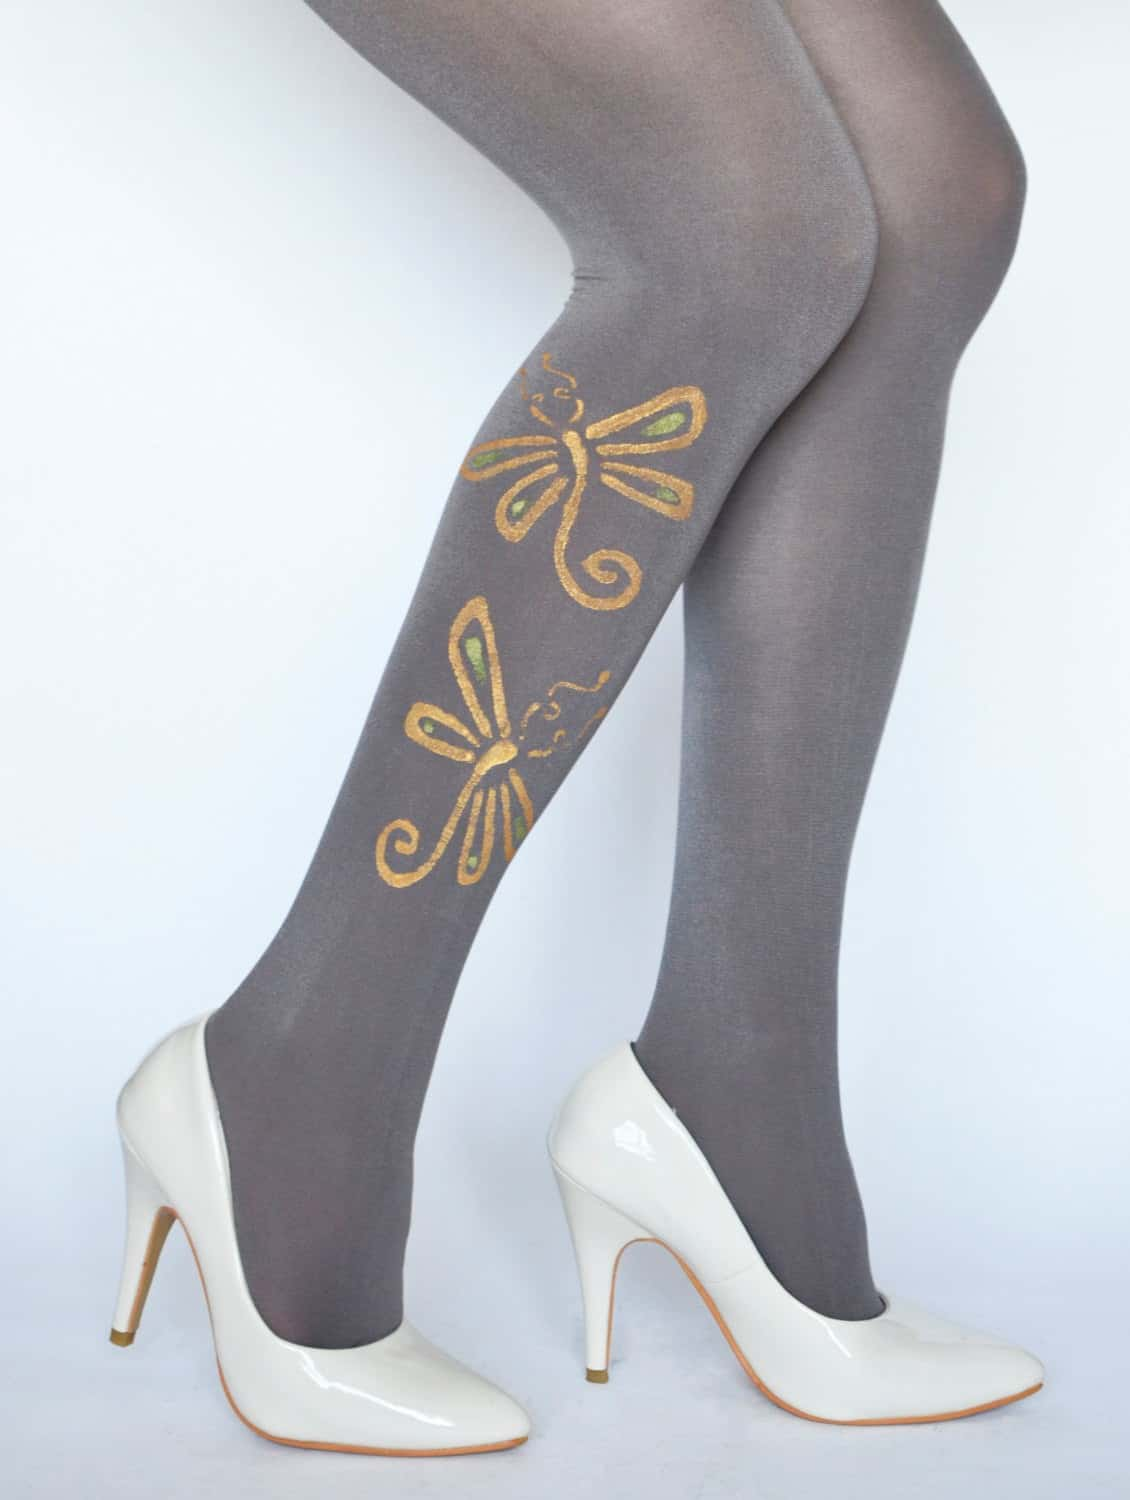 DIY paint stamped tights